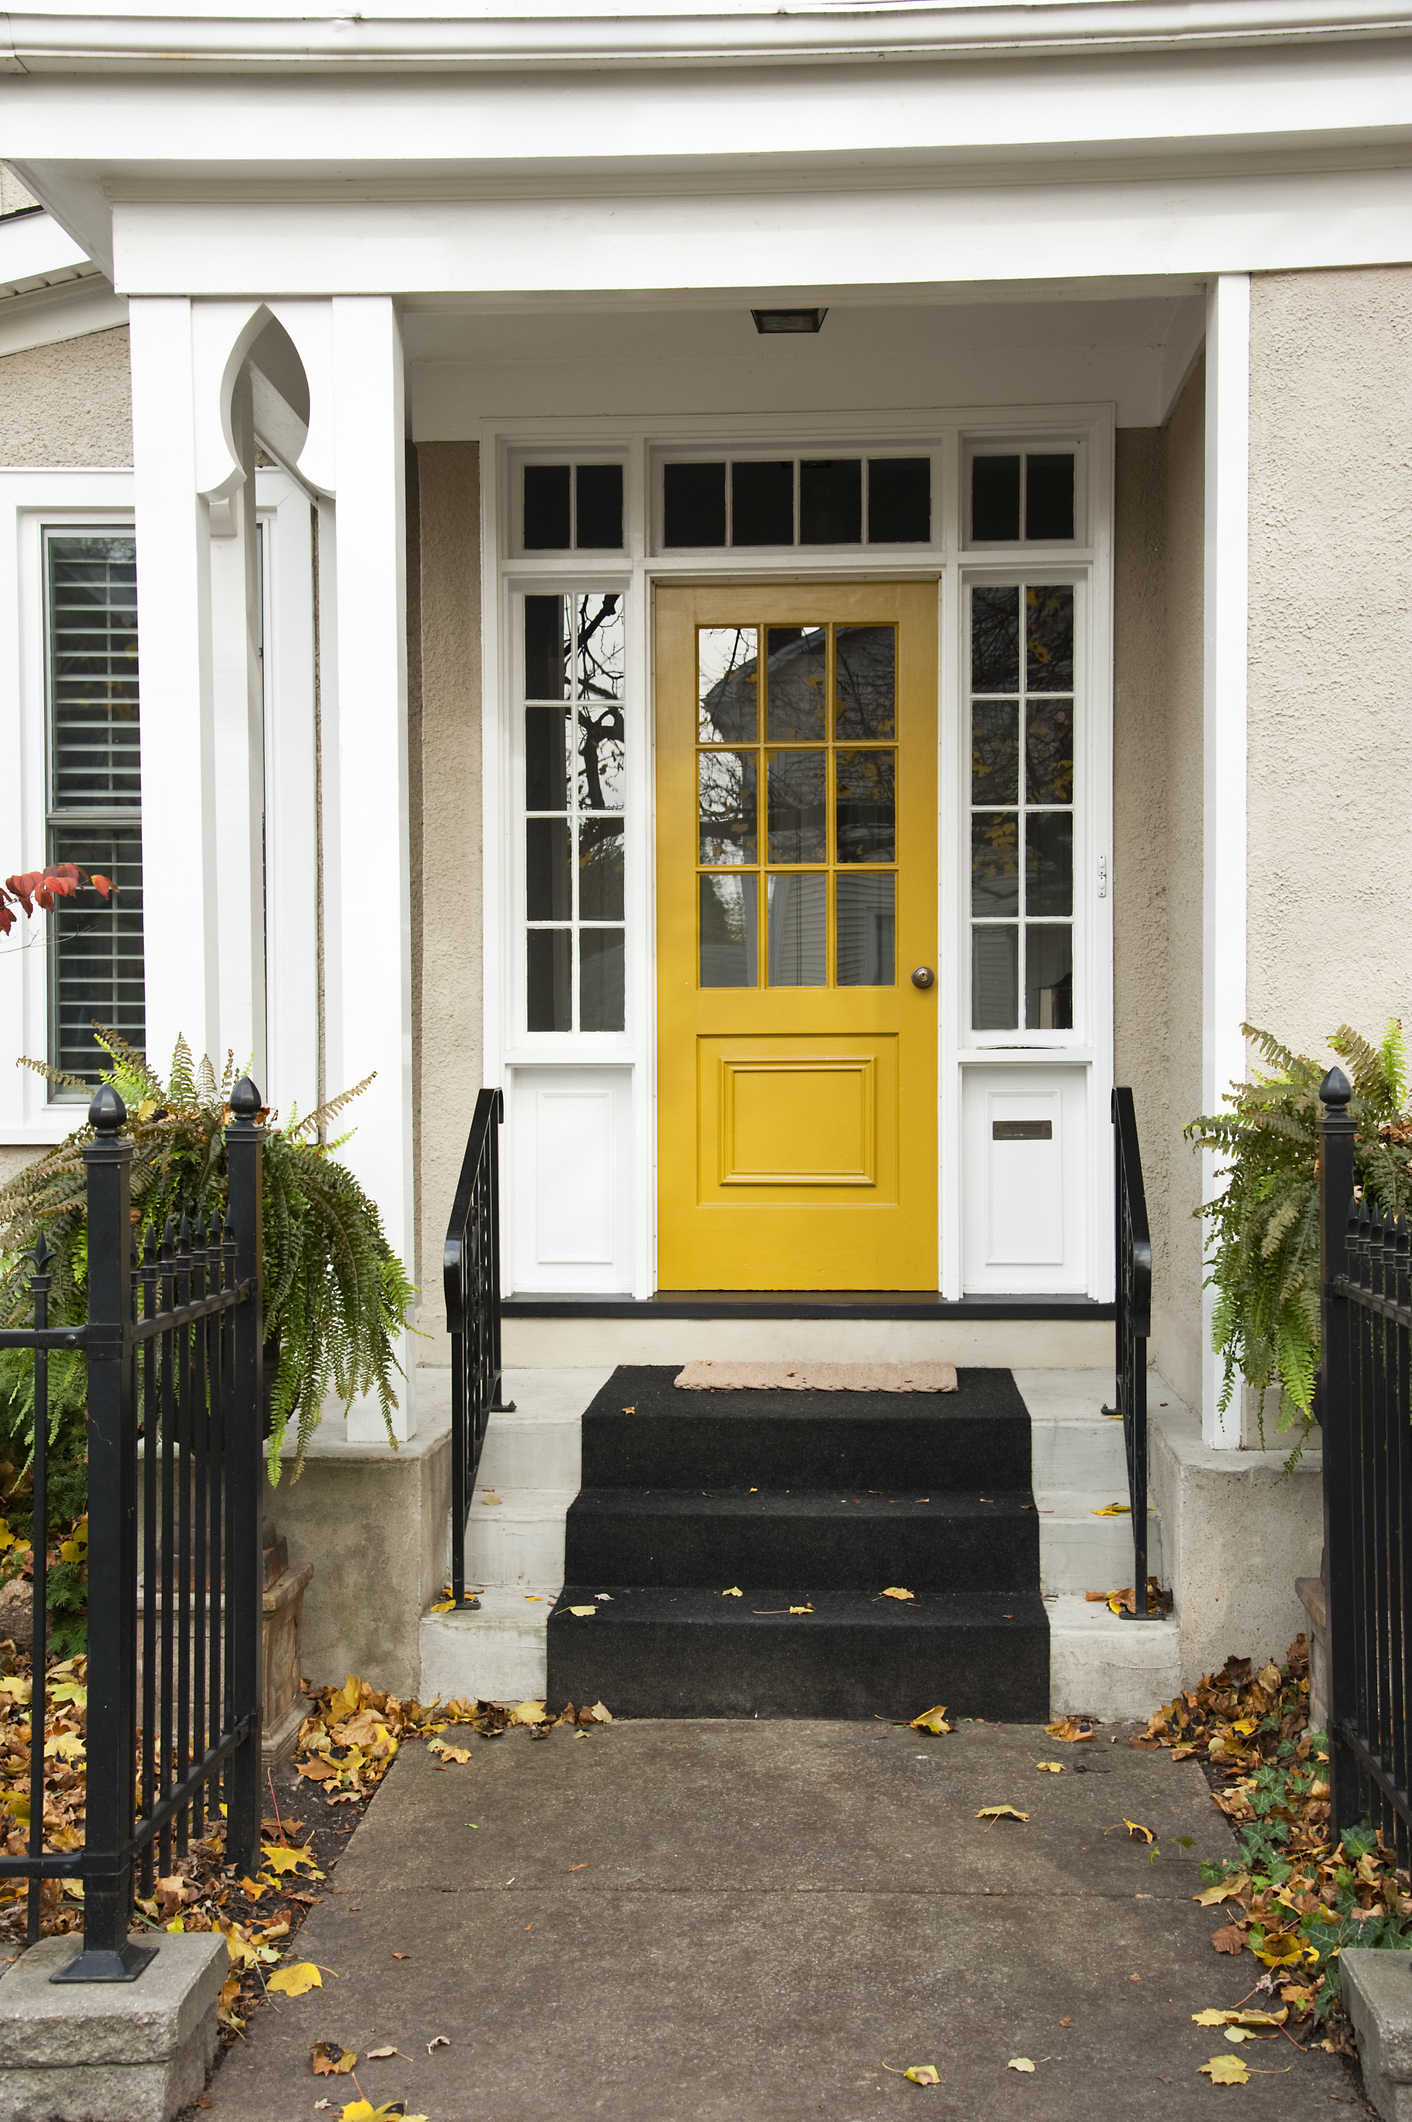 With investment mortgage rates still low, refinancing is attractive